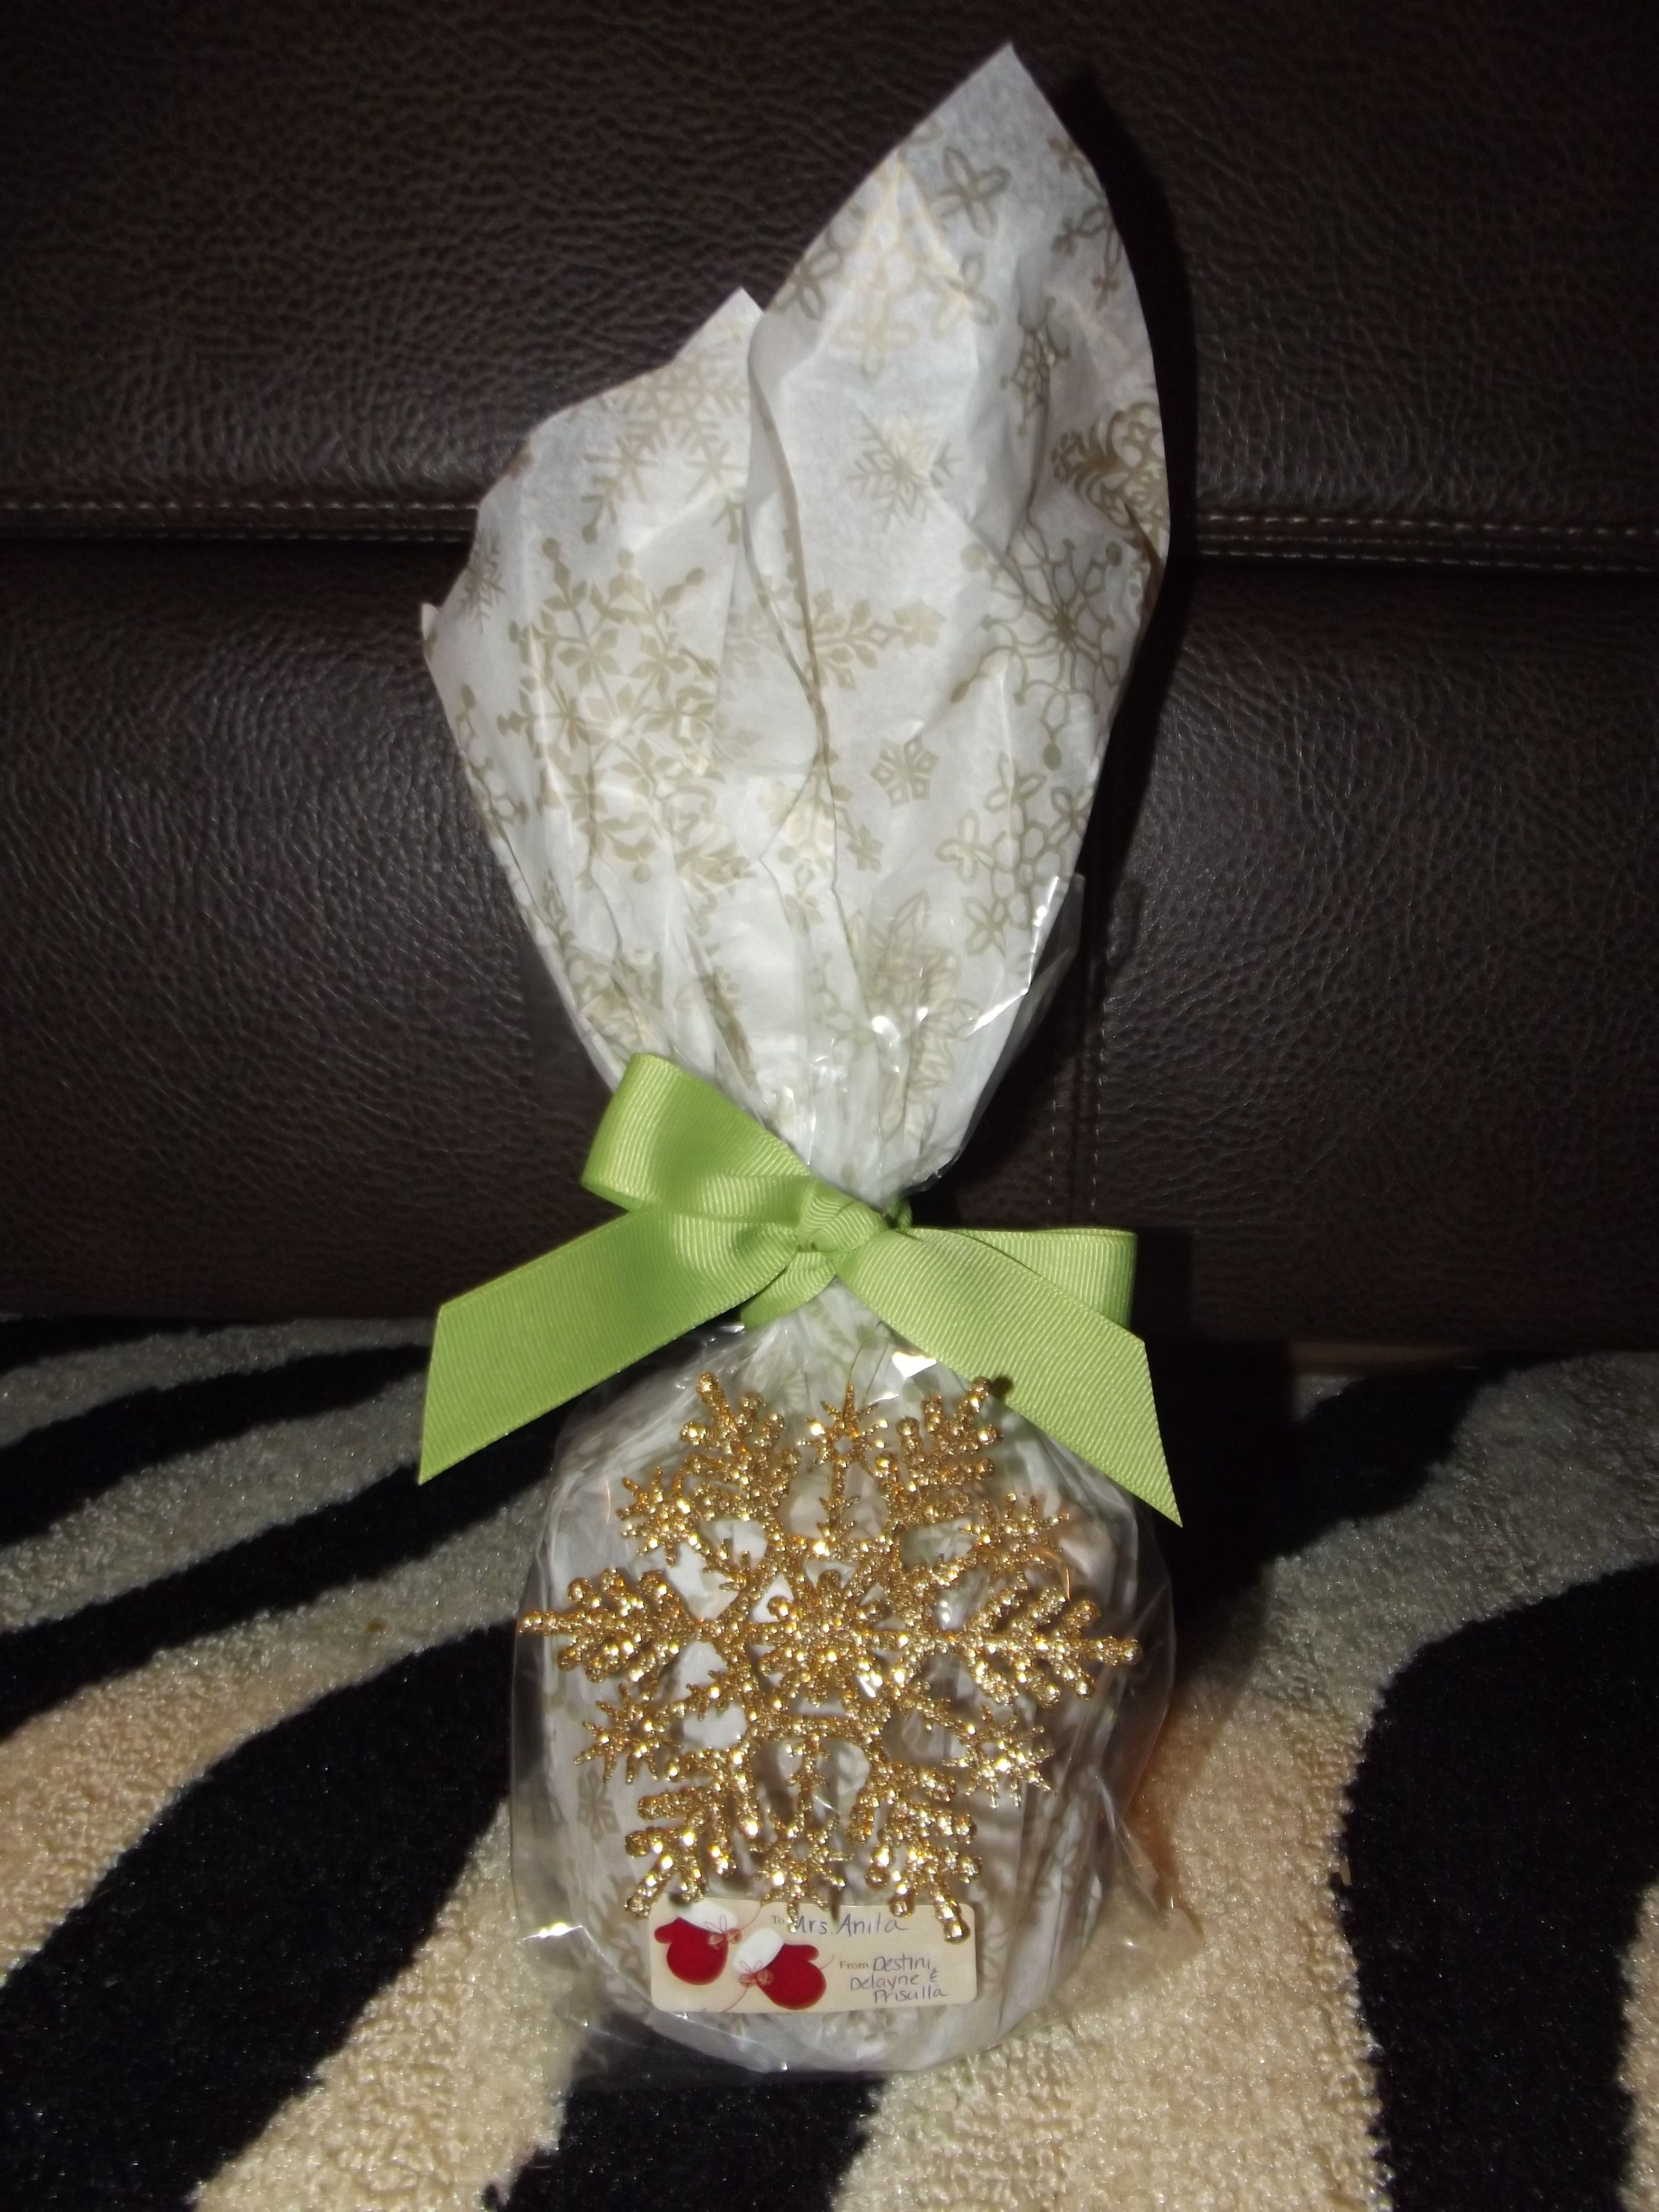 A Really Cute Idea For Wrapping Candles I Love B Wrap The Candle In Tissue Paper Stick It In A Cellophane Bag Tie With Candle Wrap Craft Gifts Cute Gifts